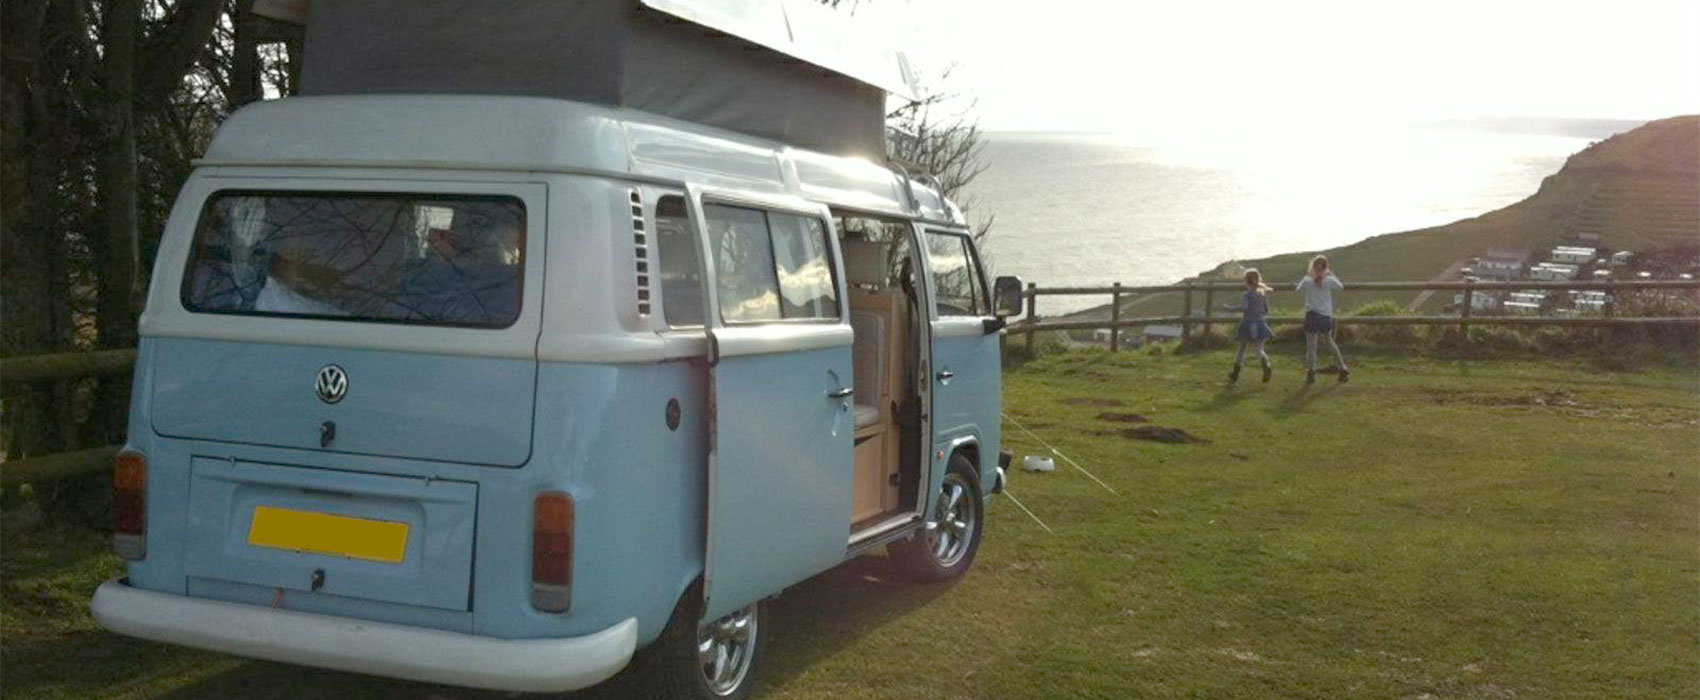 Reginald campervan